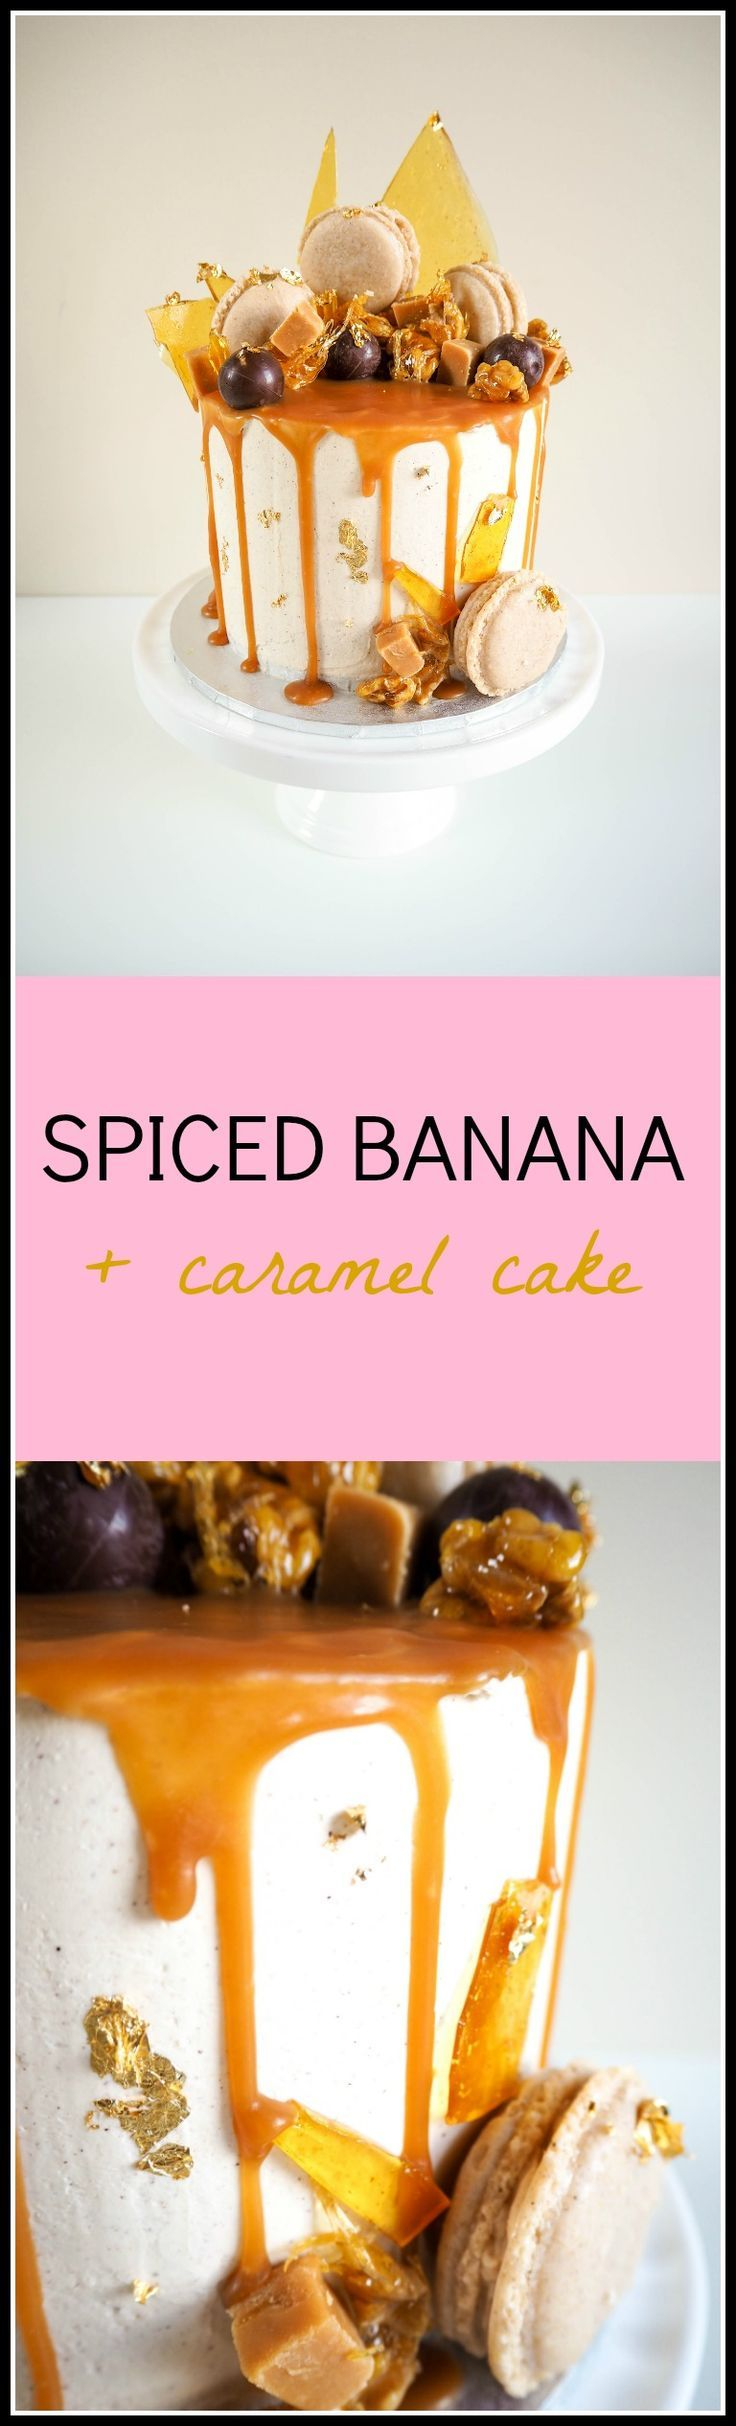 Spiced Banana and Caramel Cake